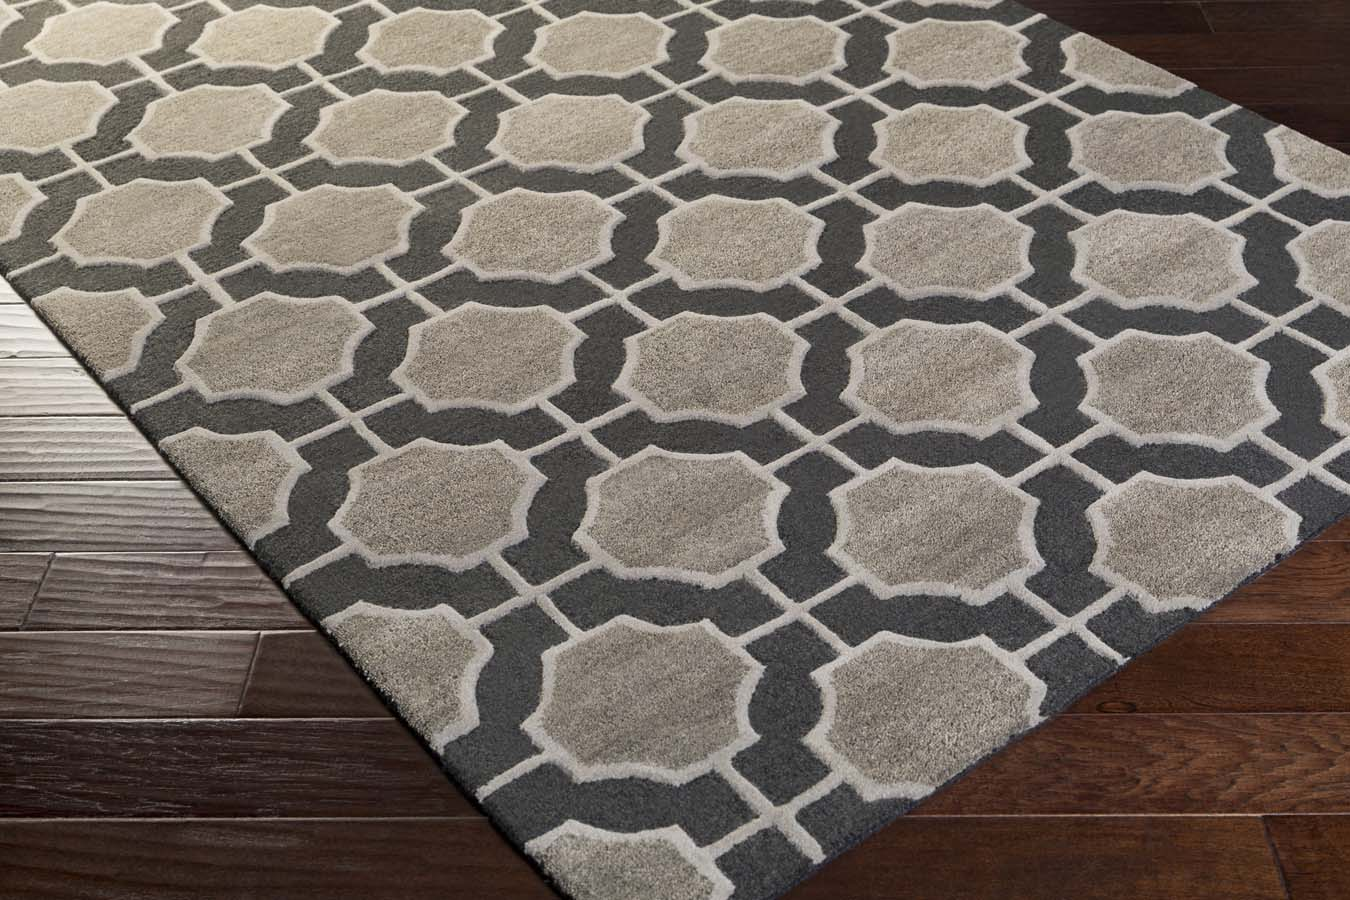 Surya Dream DST-1185 Rug